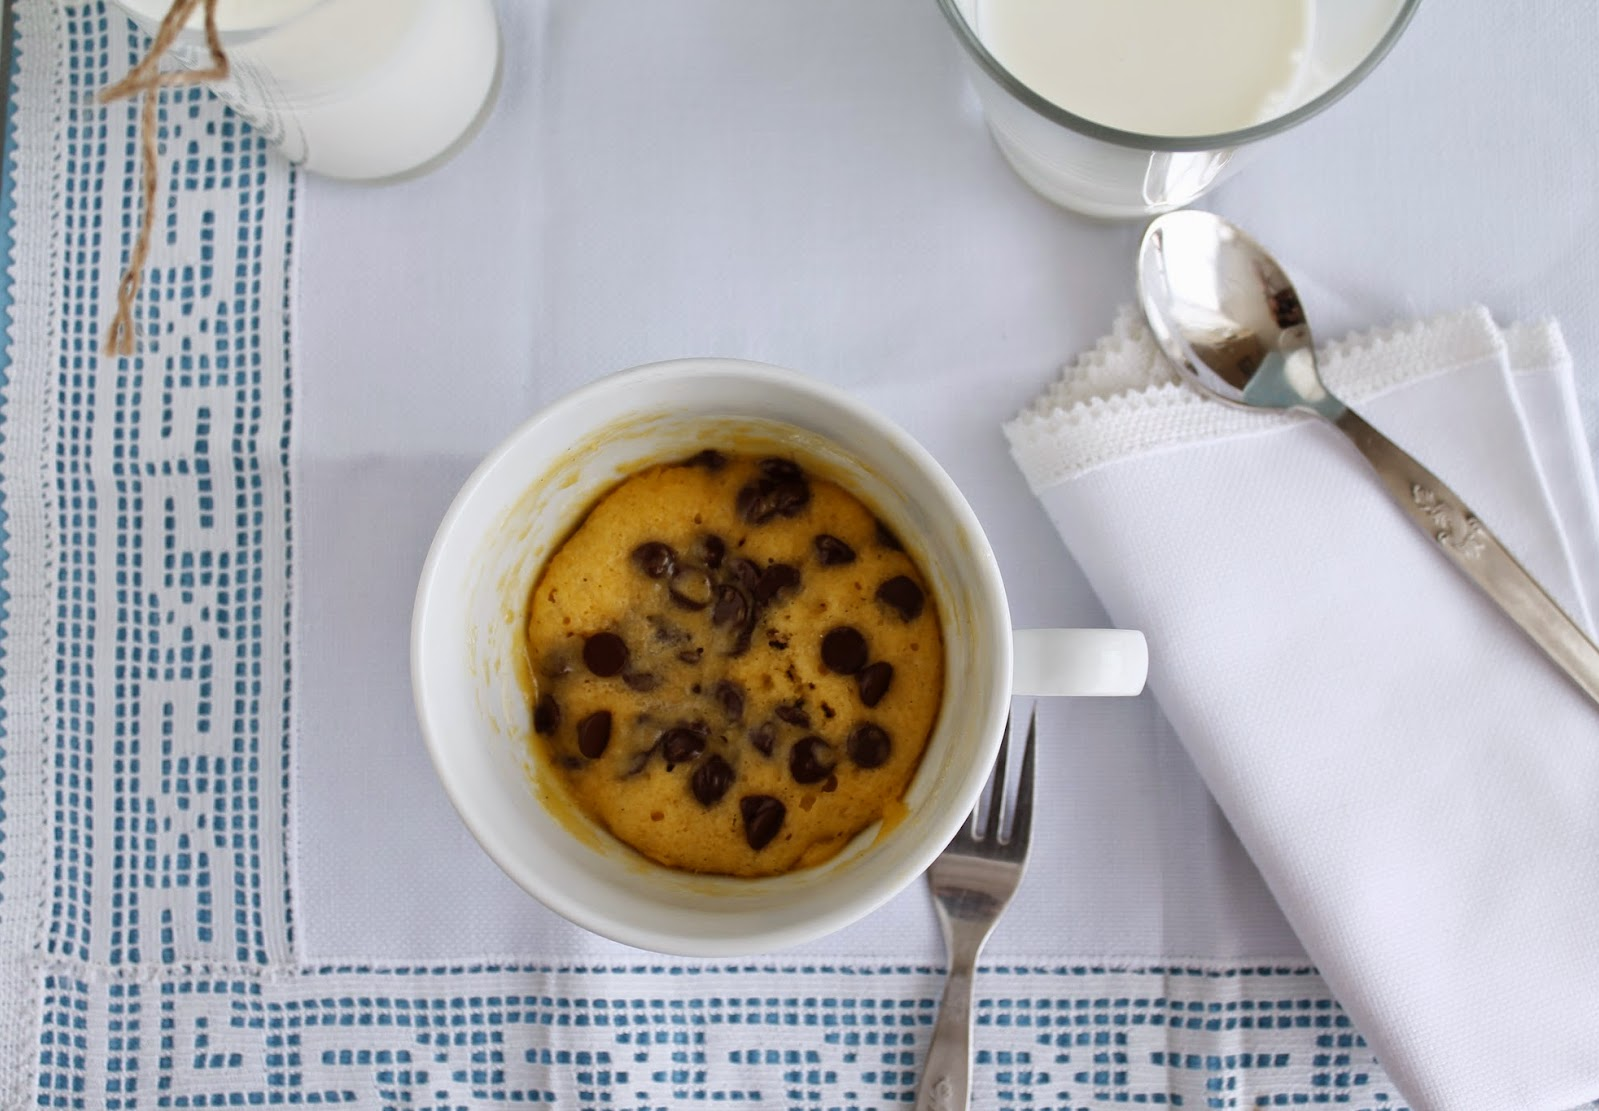 Receta y paso a paso Cookie in cup o Galleta hecha en taza